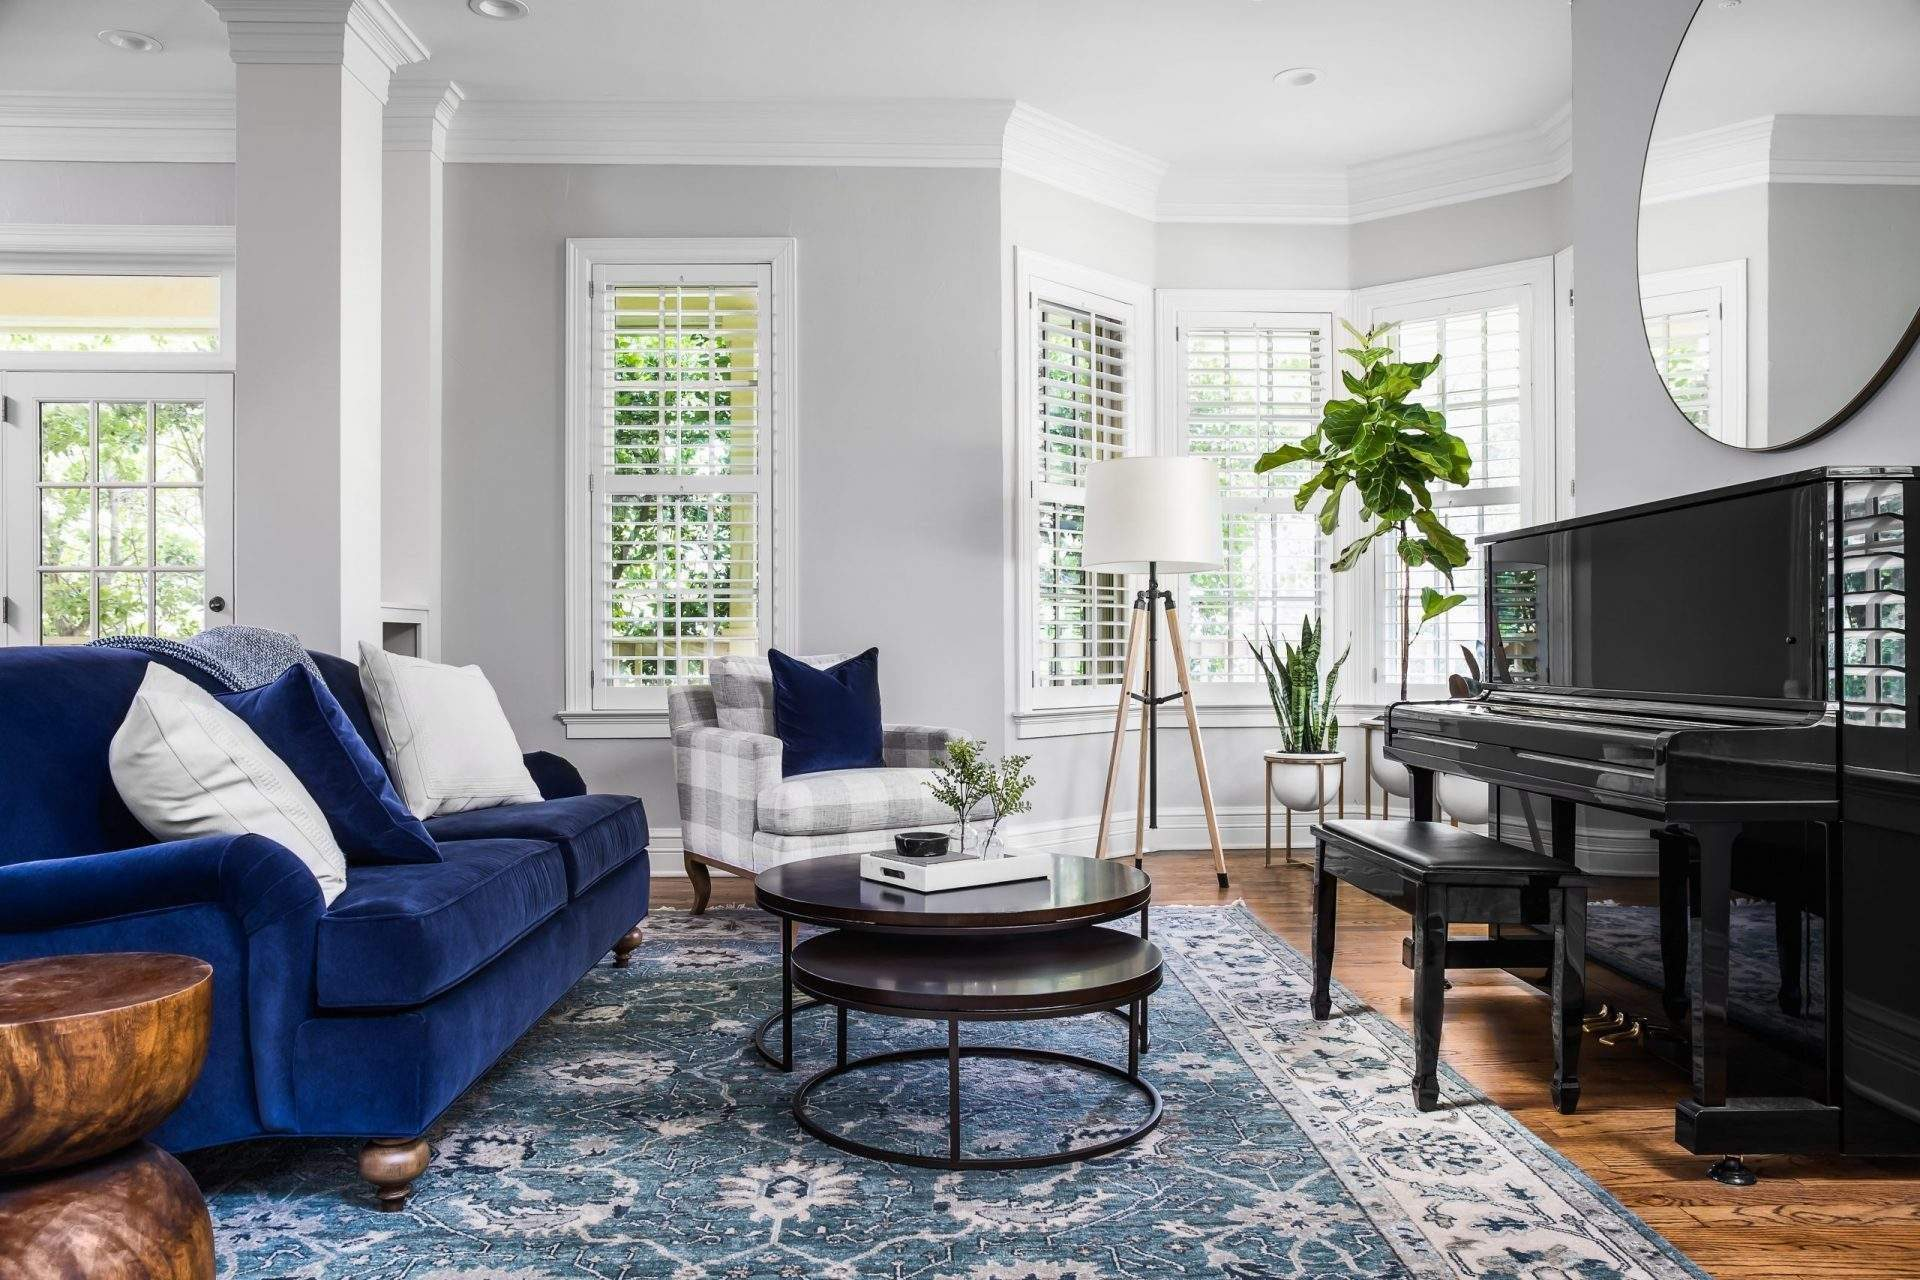 Creative Succulent Decor   Succulents by window with blue couch   Austin, Texas